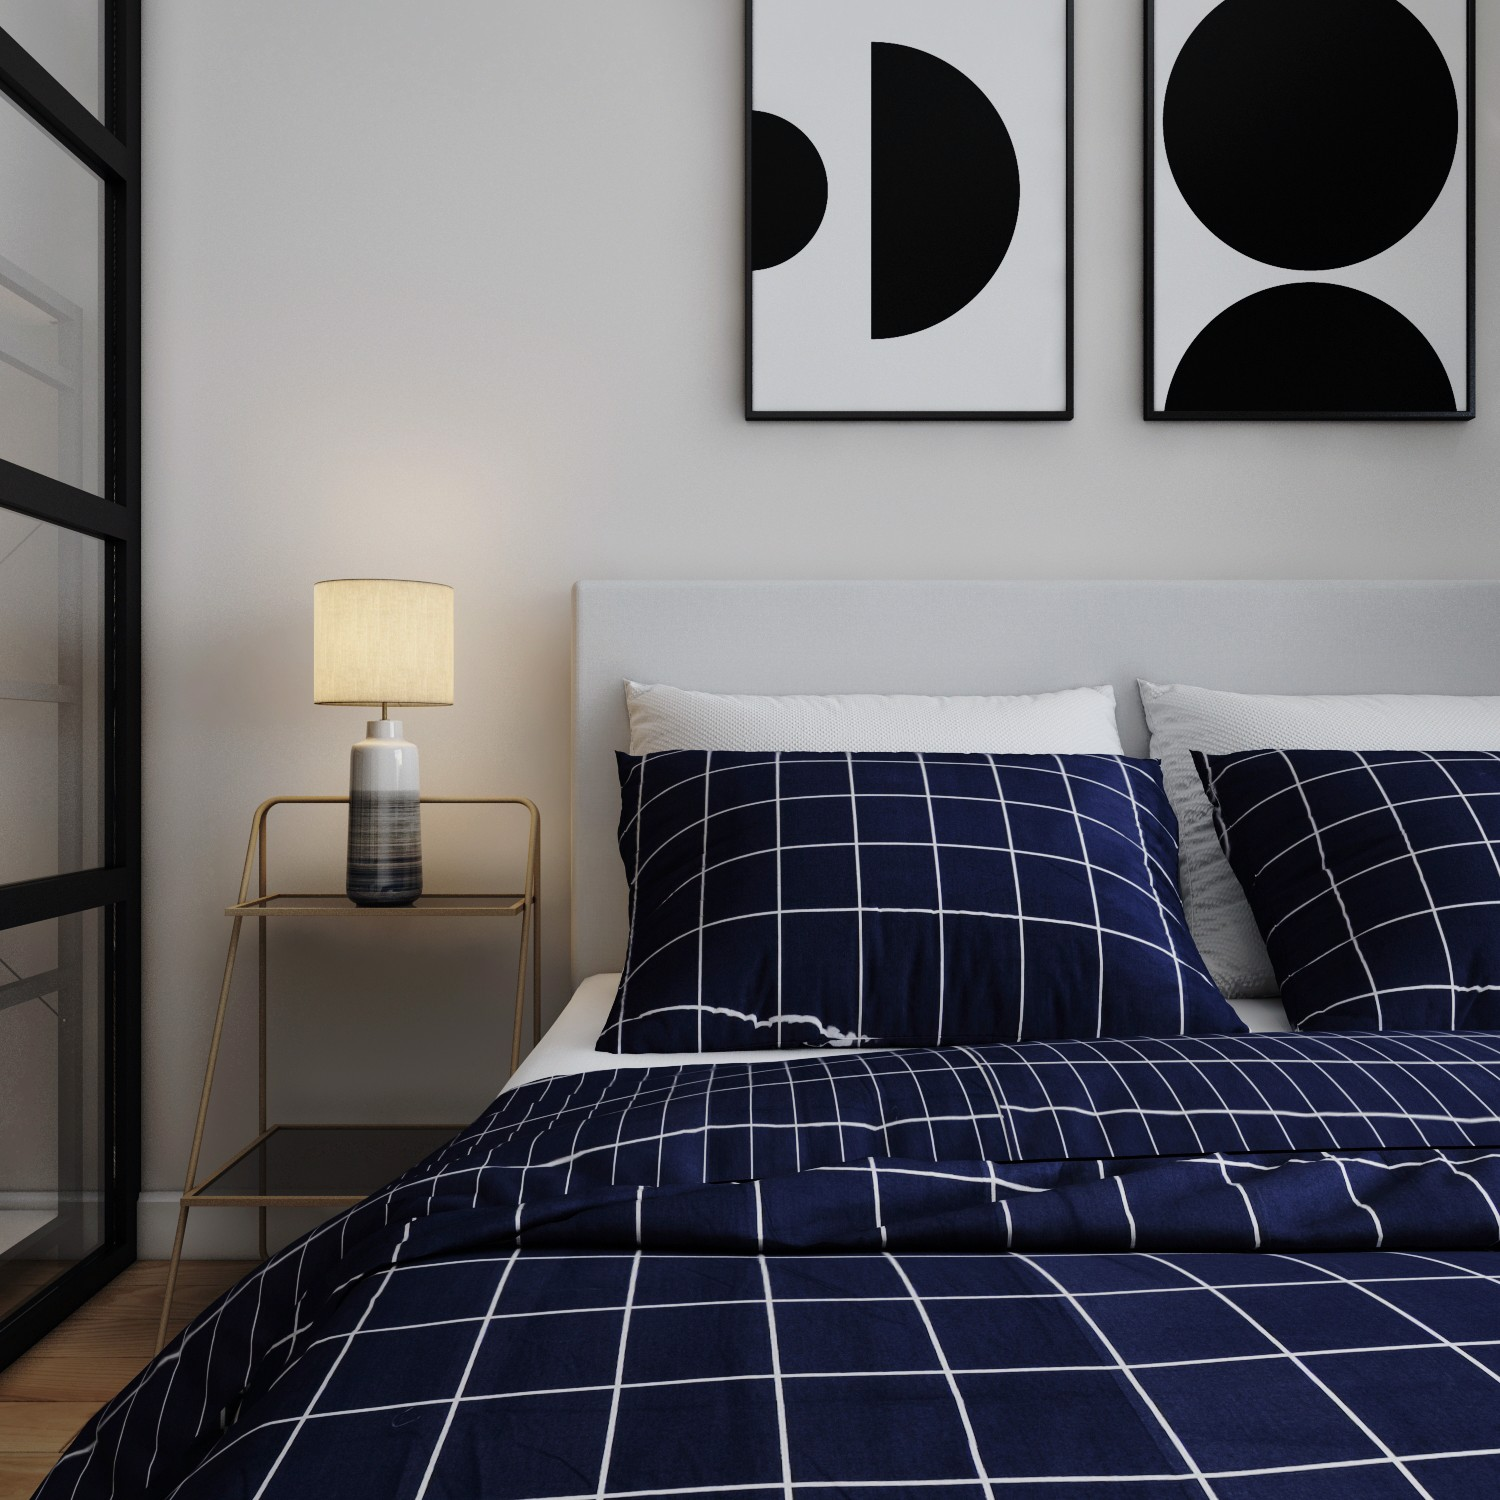 Pillow case 237 White grid on navy